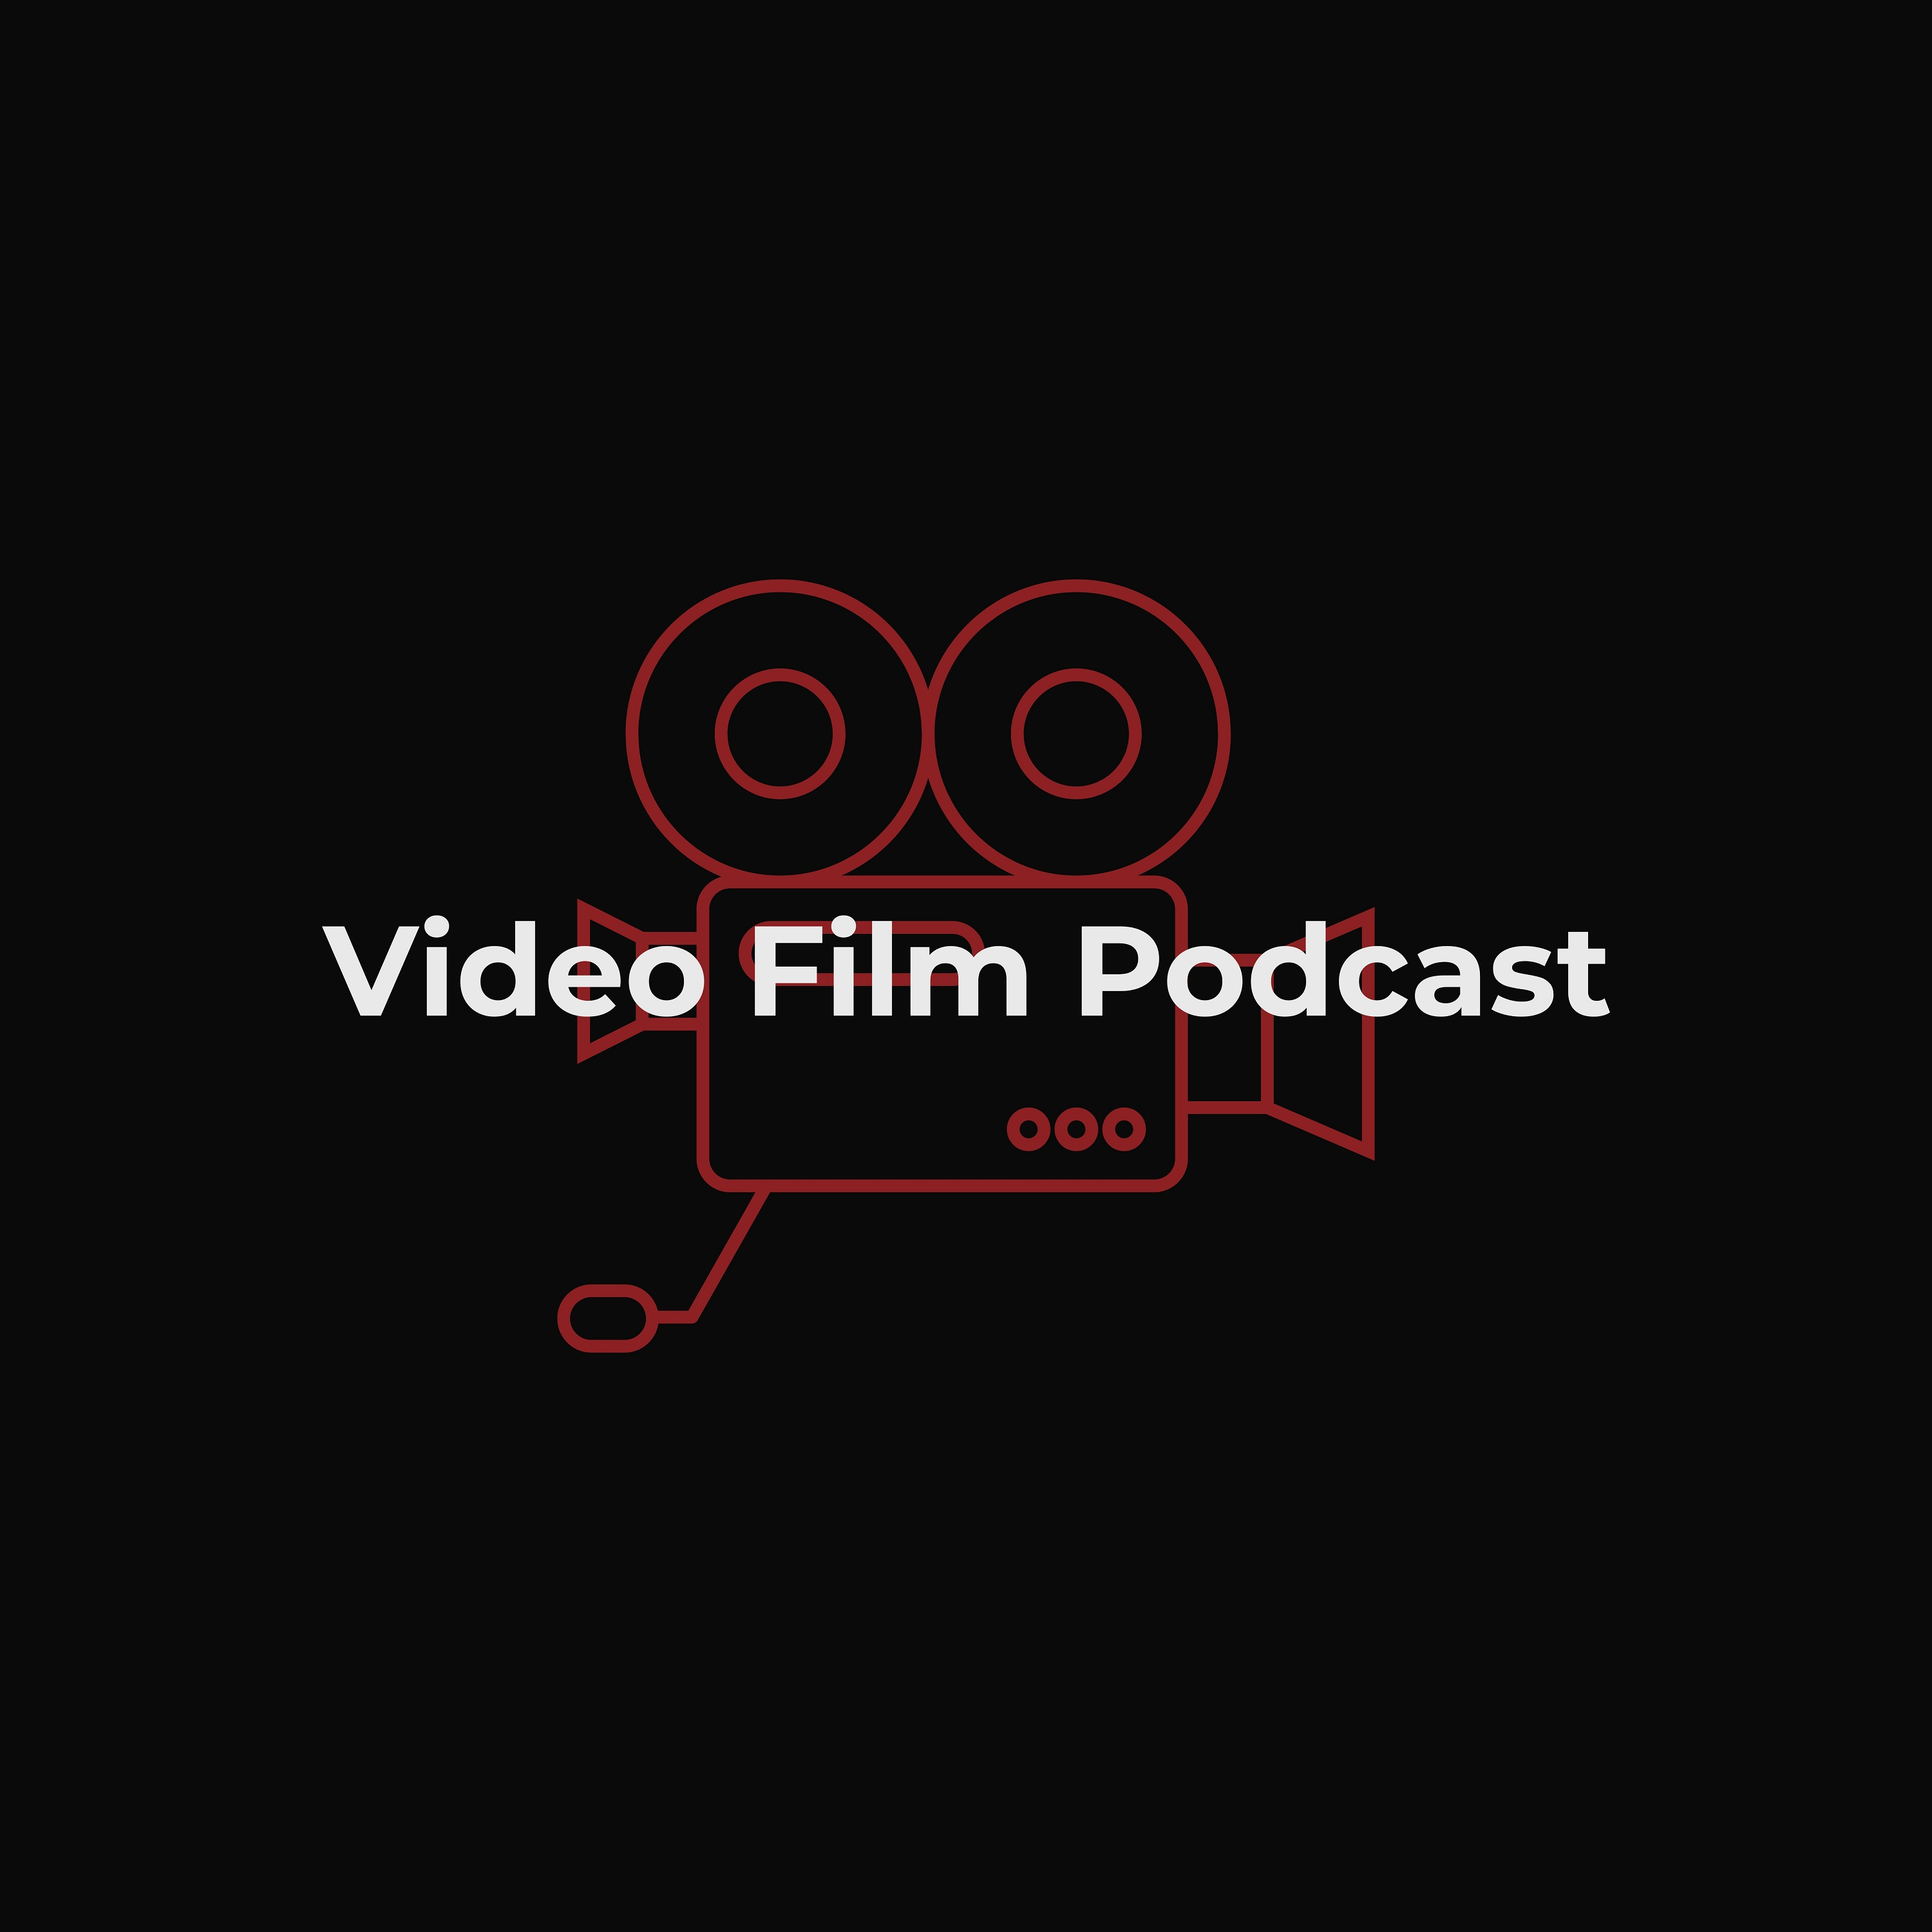 Video Film Podcast